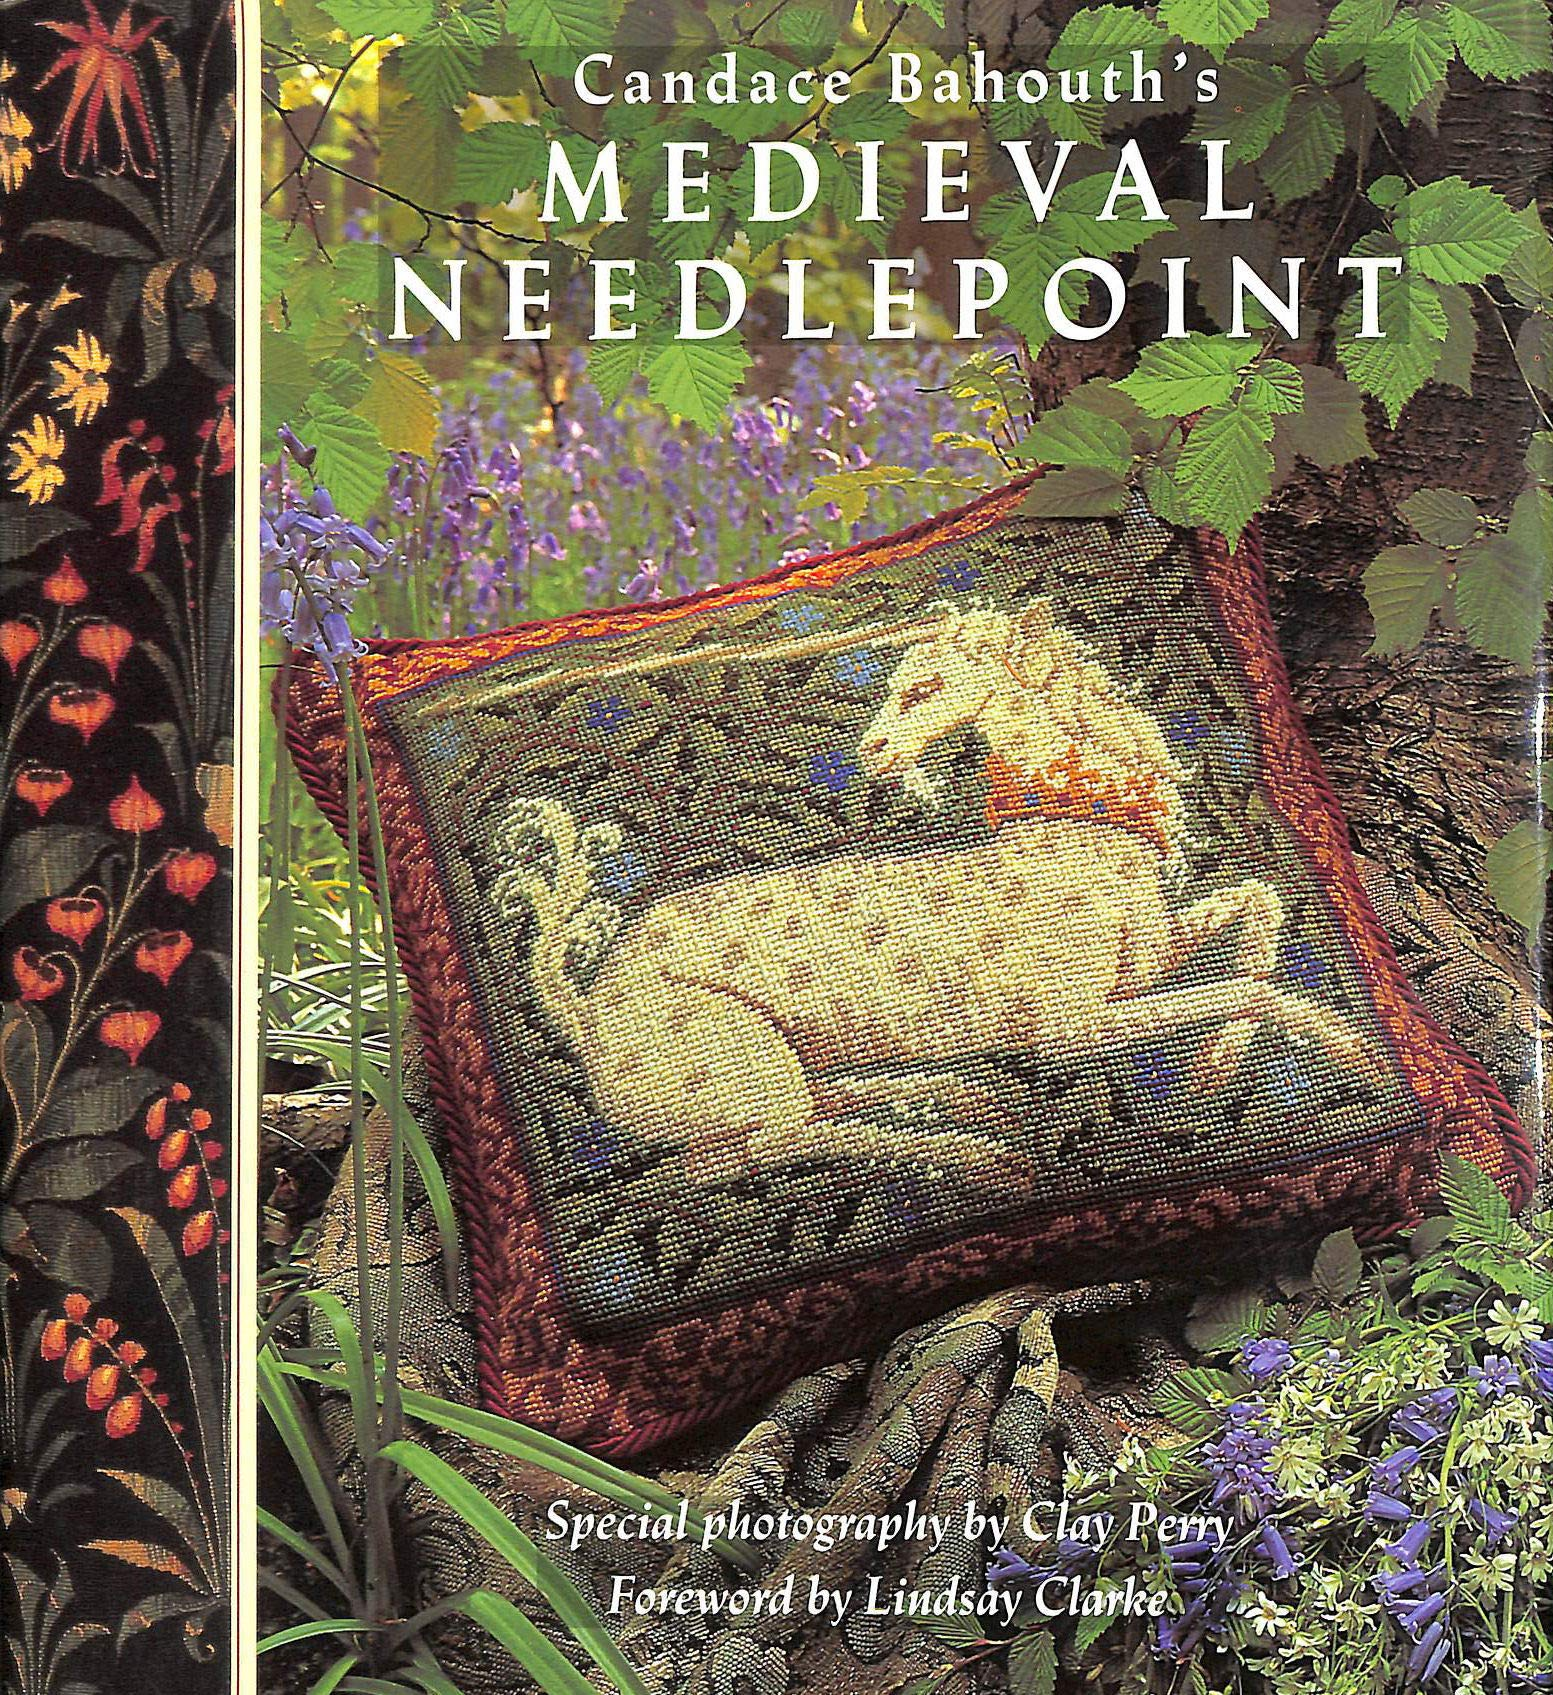 Candace Bahouth's Medieval Needlepoint Paperback – October 28, 1993 Clay Perry Lindsay Clarke Conran Octopus Ltd 1850295344